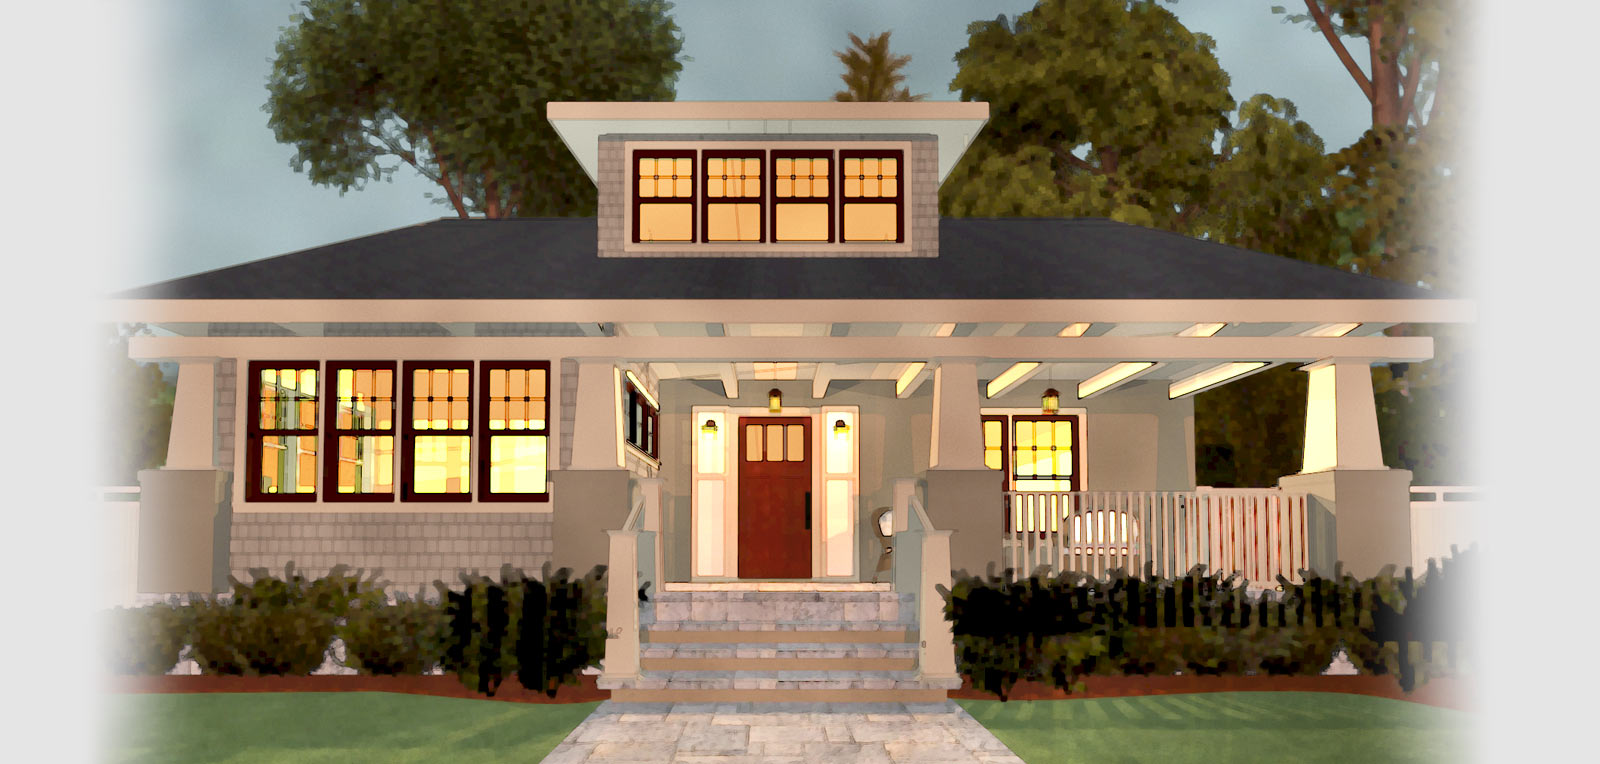 architect house plans architectural home designs designer trend home planhouse house plans home plans plan designers simple planhouse